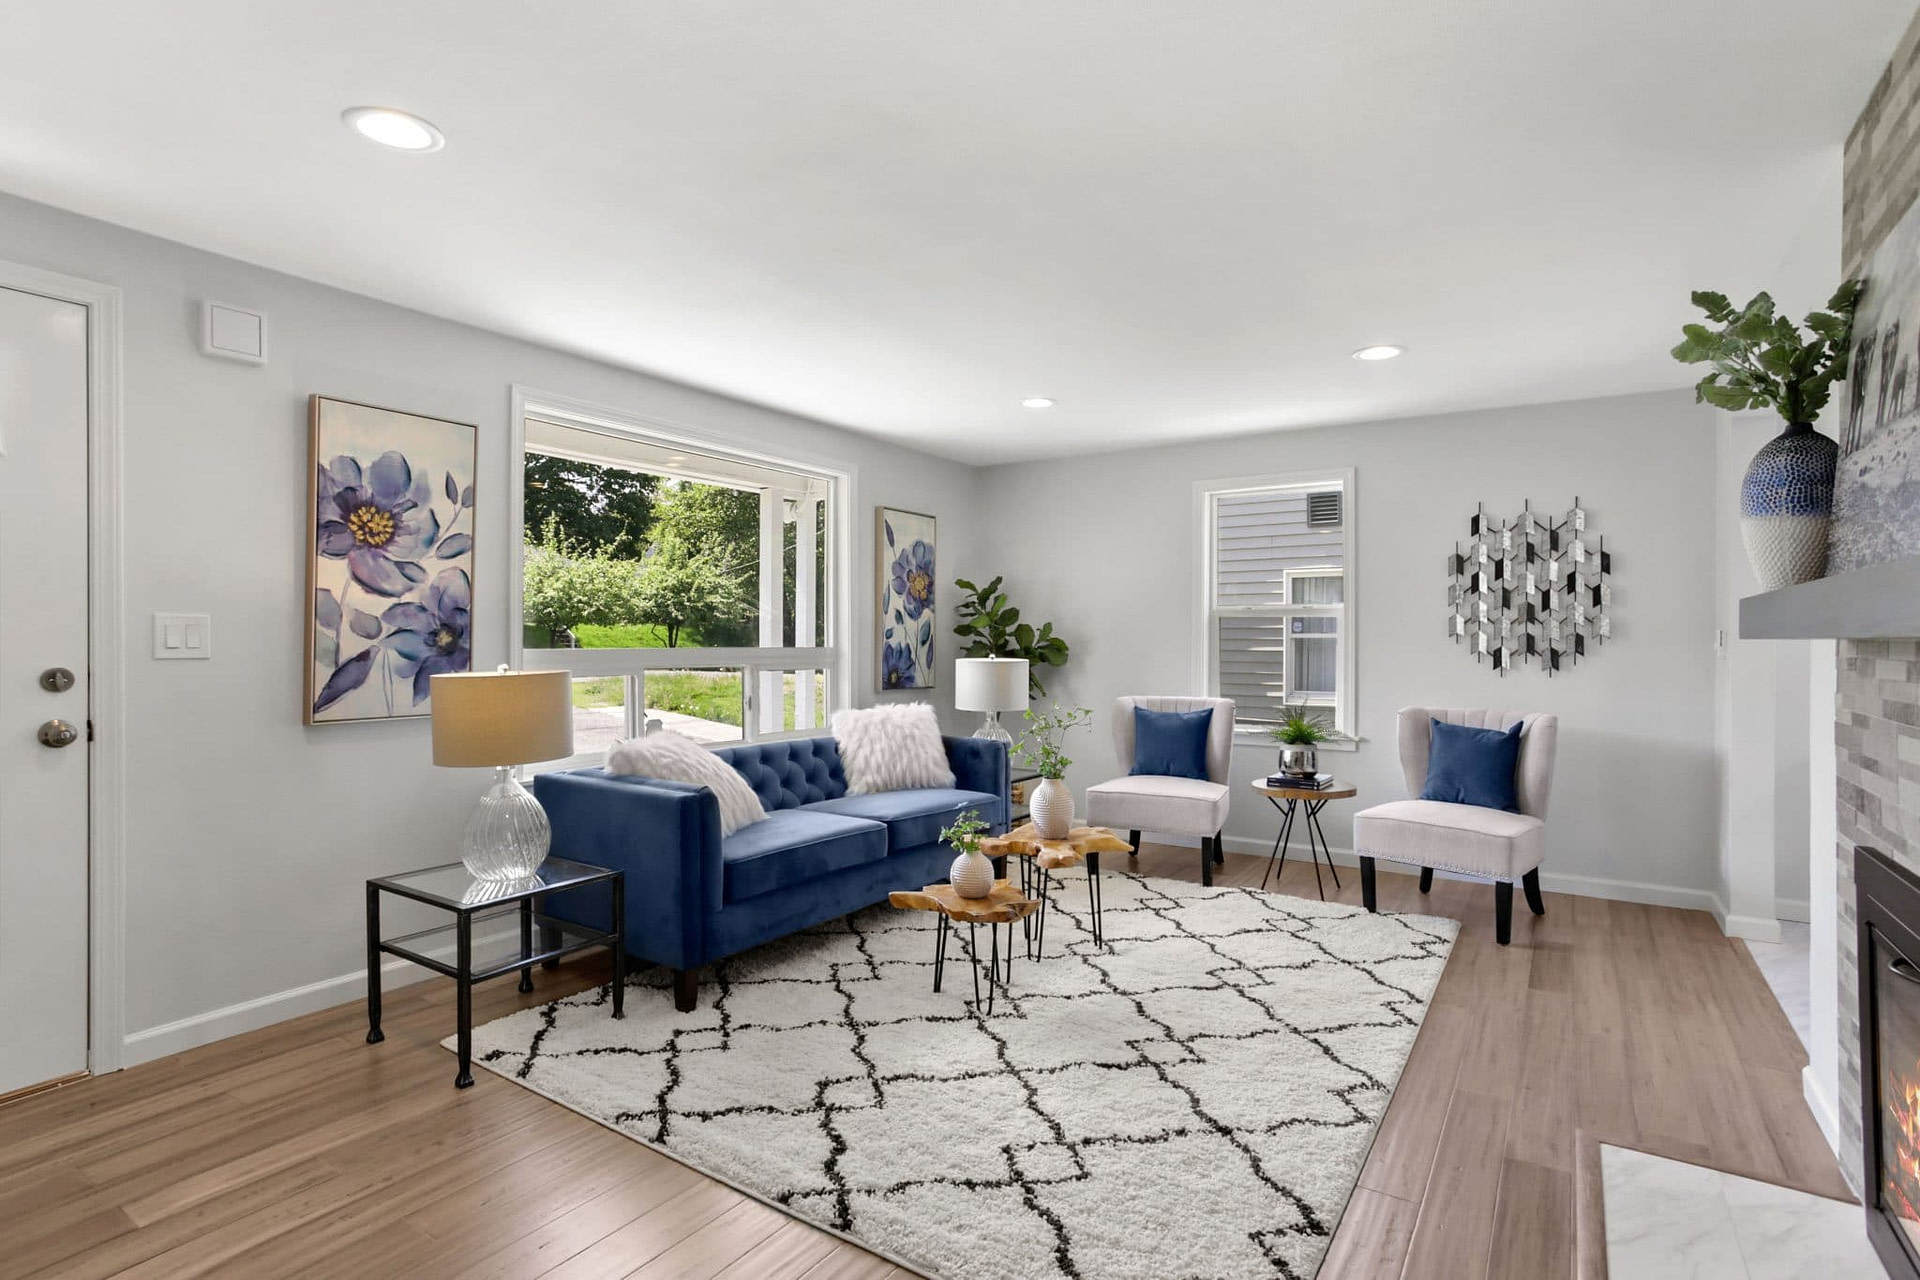 Living room with a blue and white sofa.